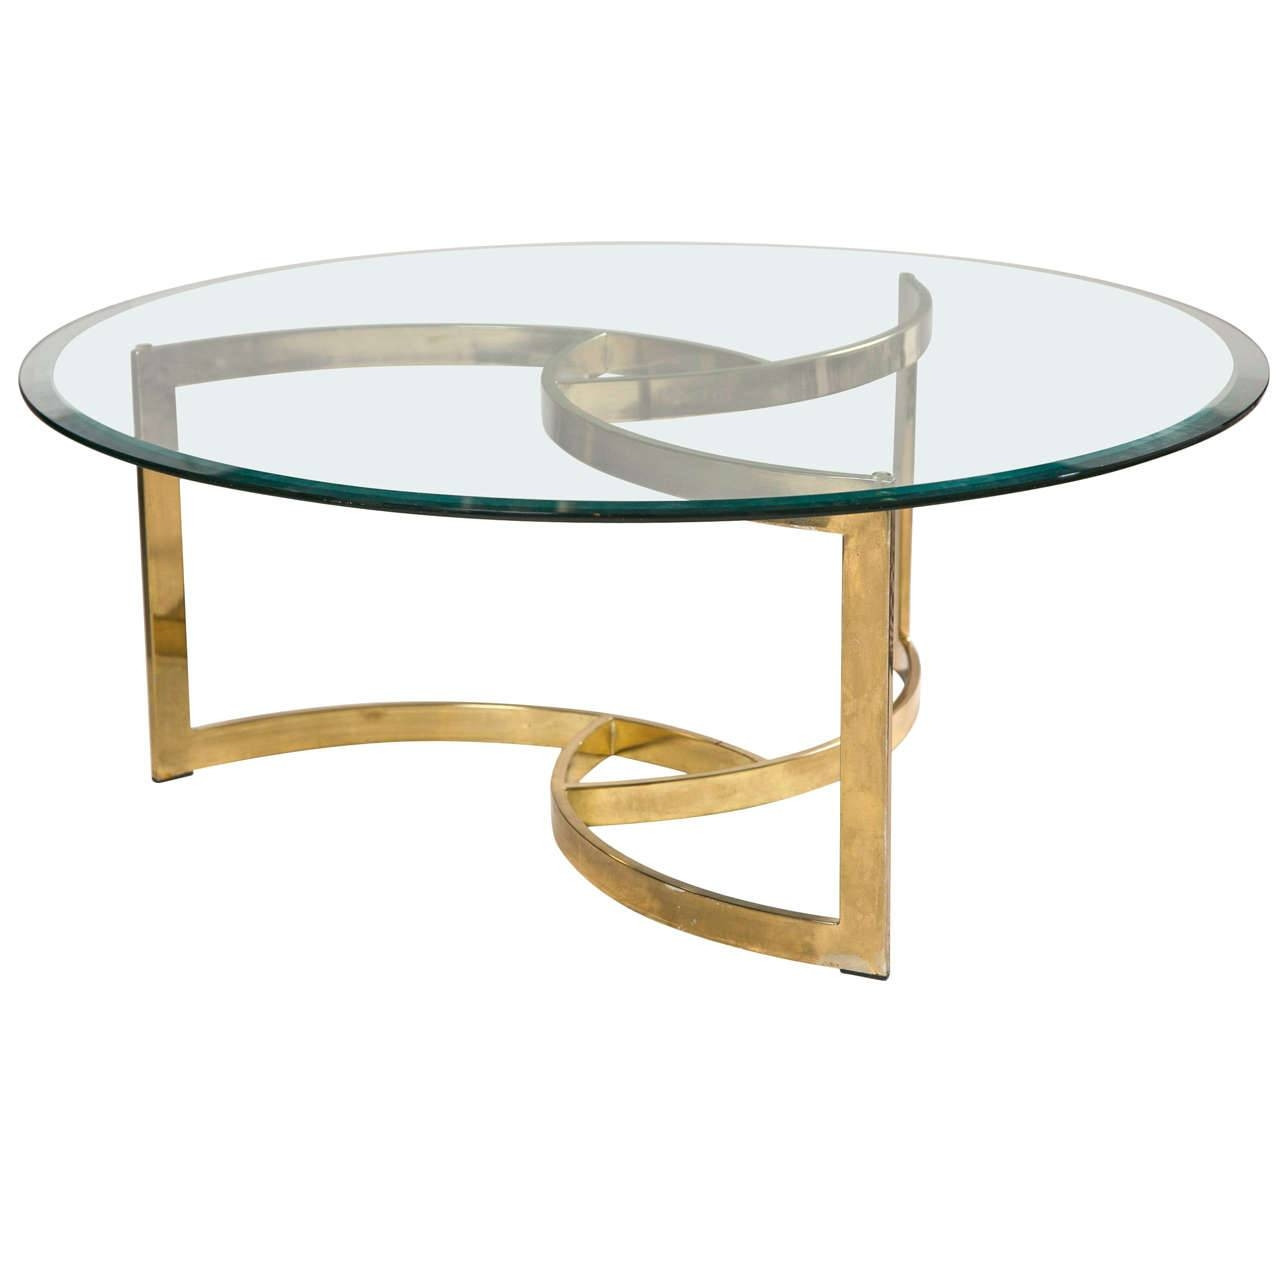 Coffee Table, Contemporary Glass Top Coffee Tables Minimalist inside Glass Circular Coffee Tables (Image 4 of 31)